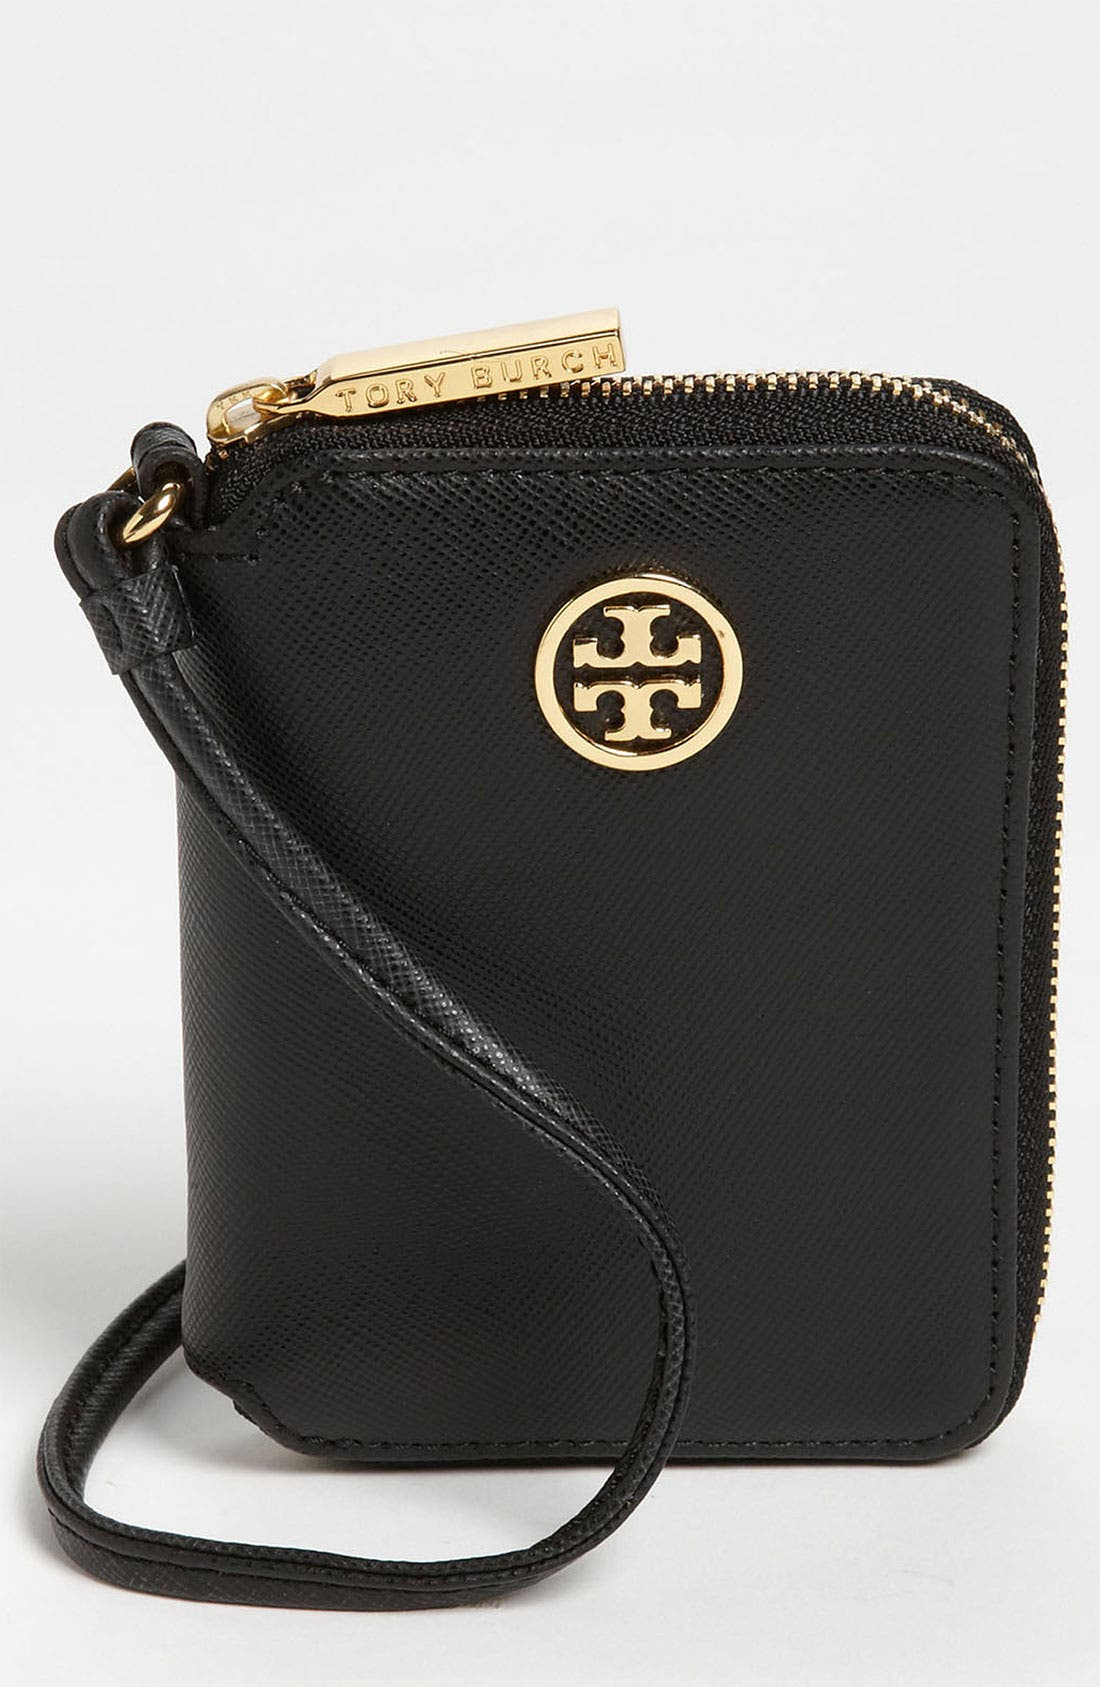 Alternate Image 1 Selected - Tory Burch 'Robinson' Zip Around French Wristlet